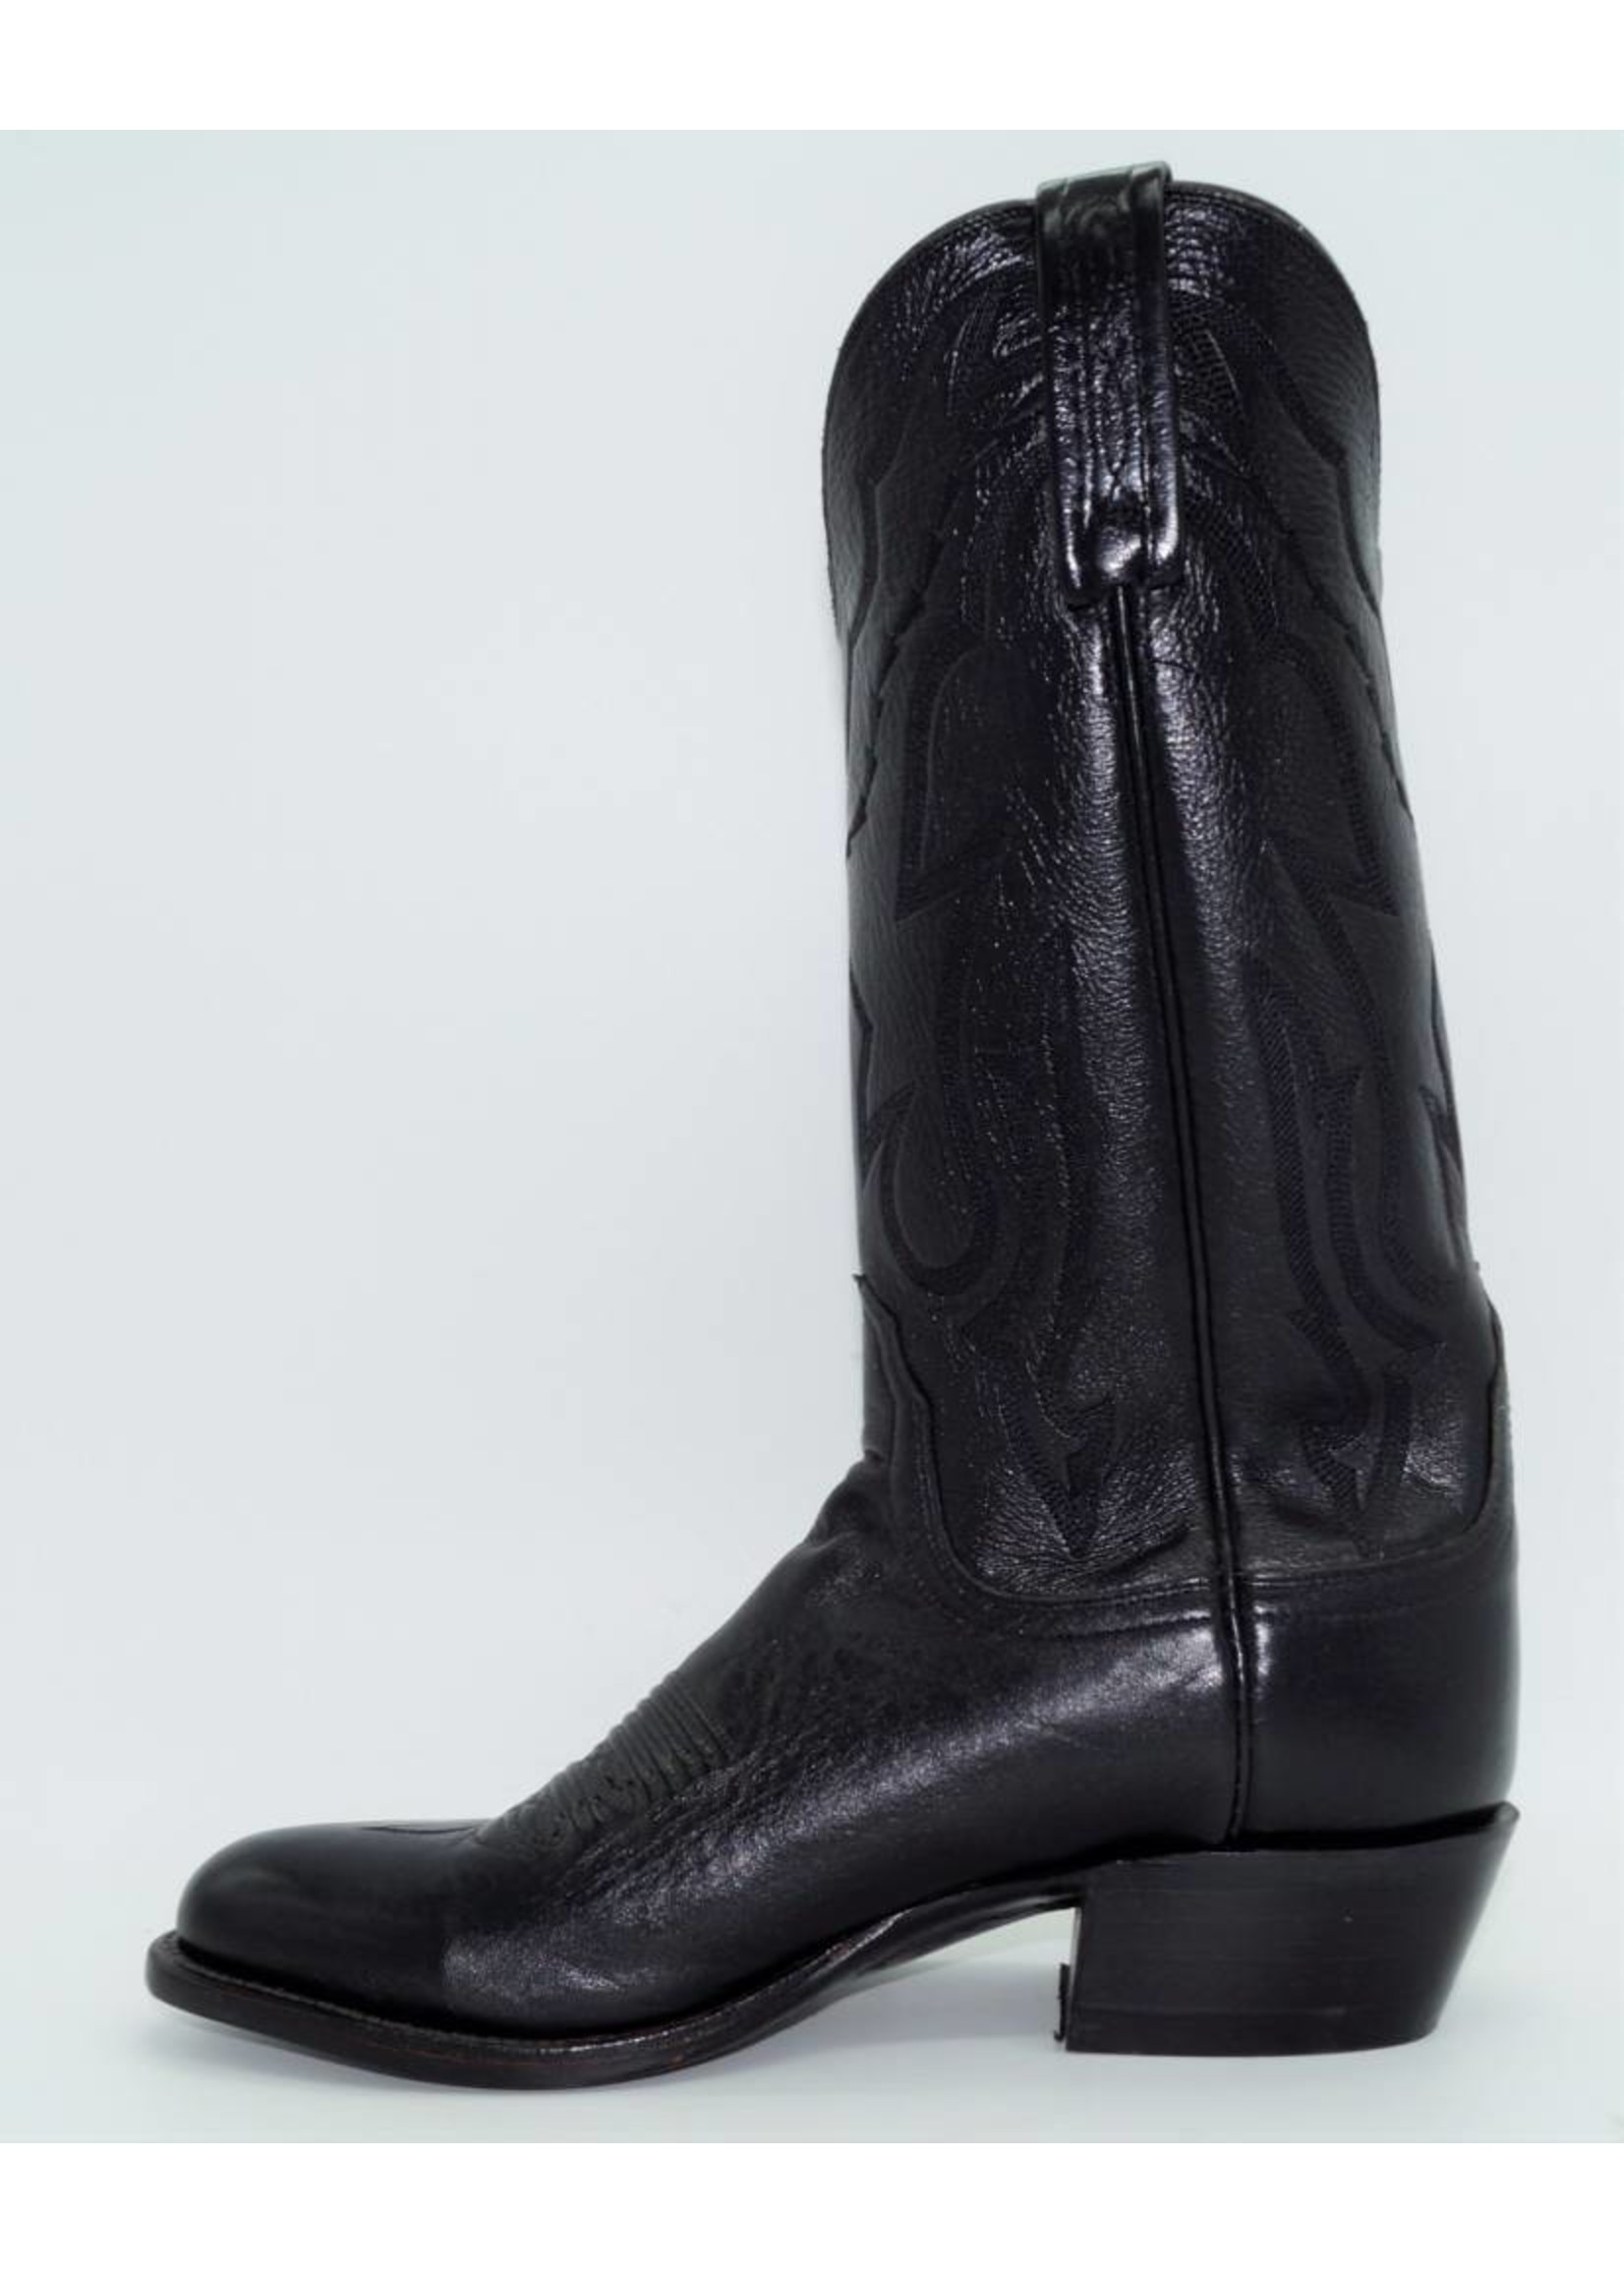 Lucchese Men's Black Western Boots T3094-R4